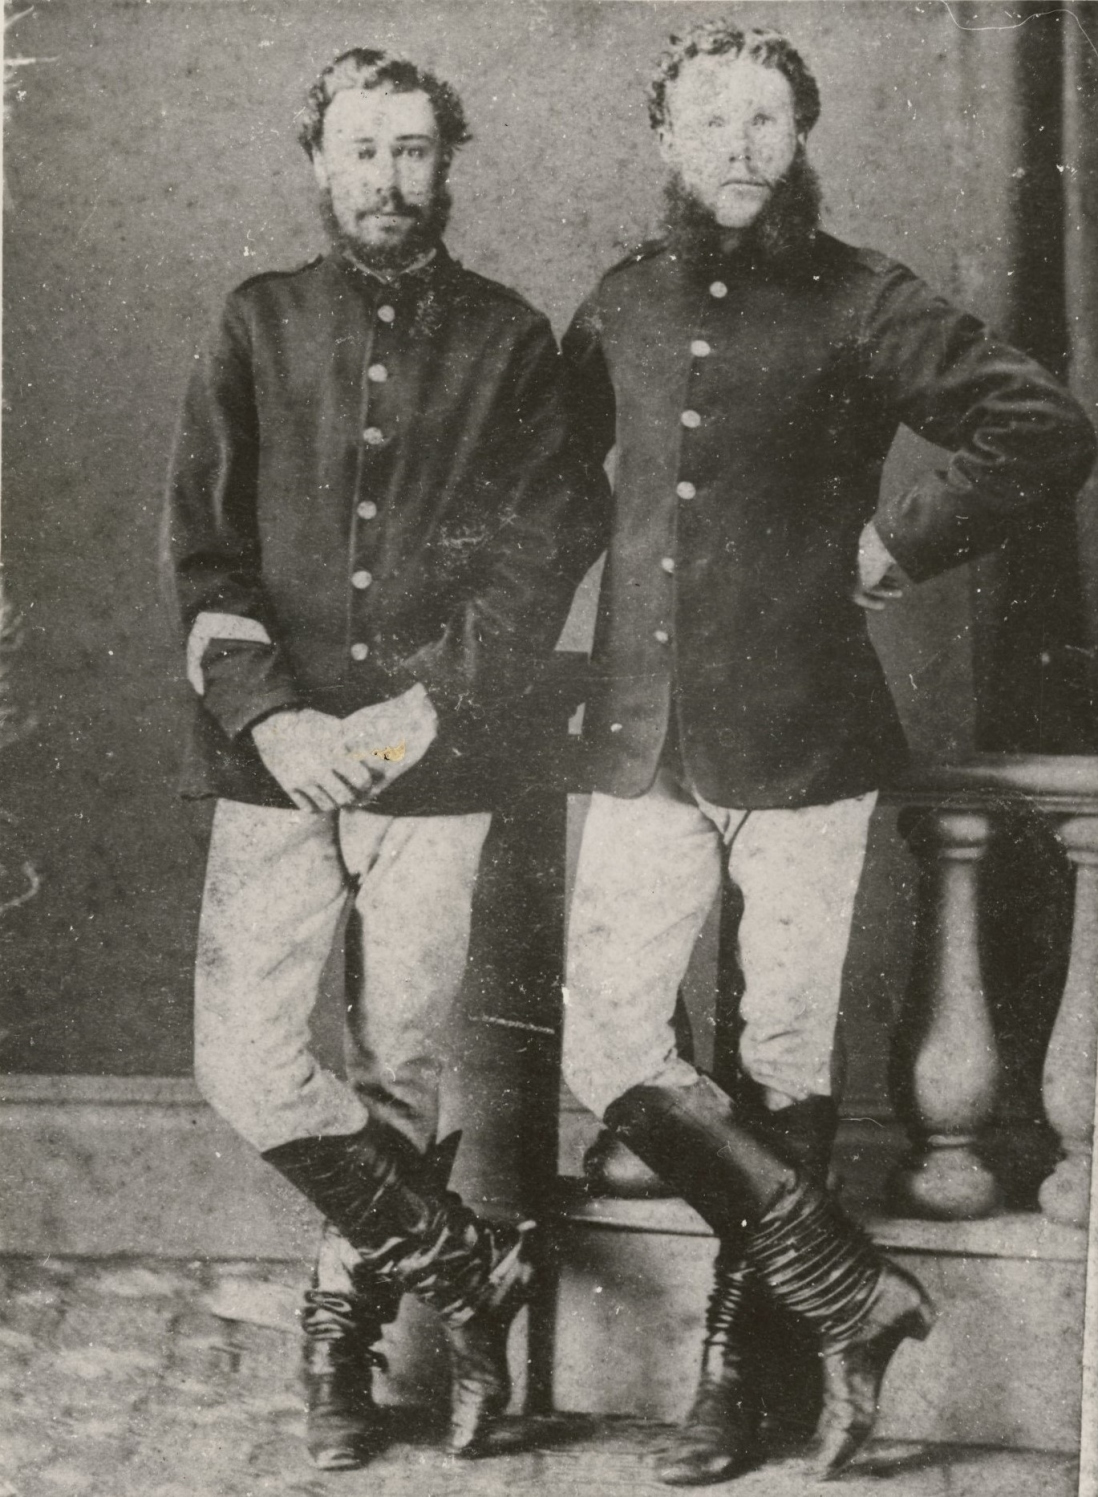 Portrait of two NSW troopers